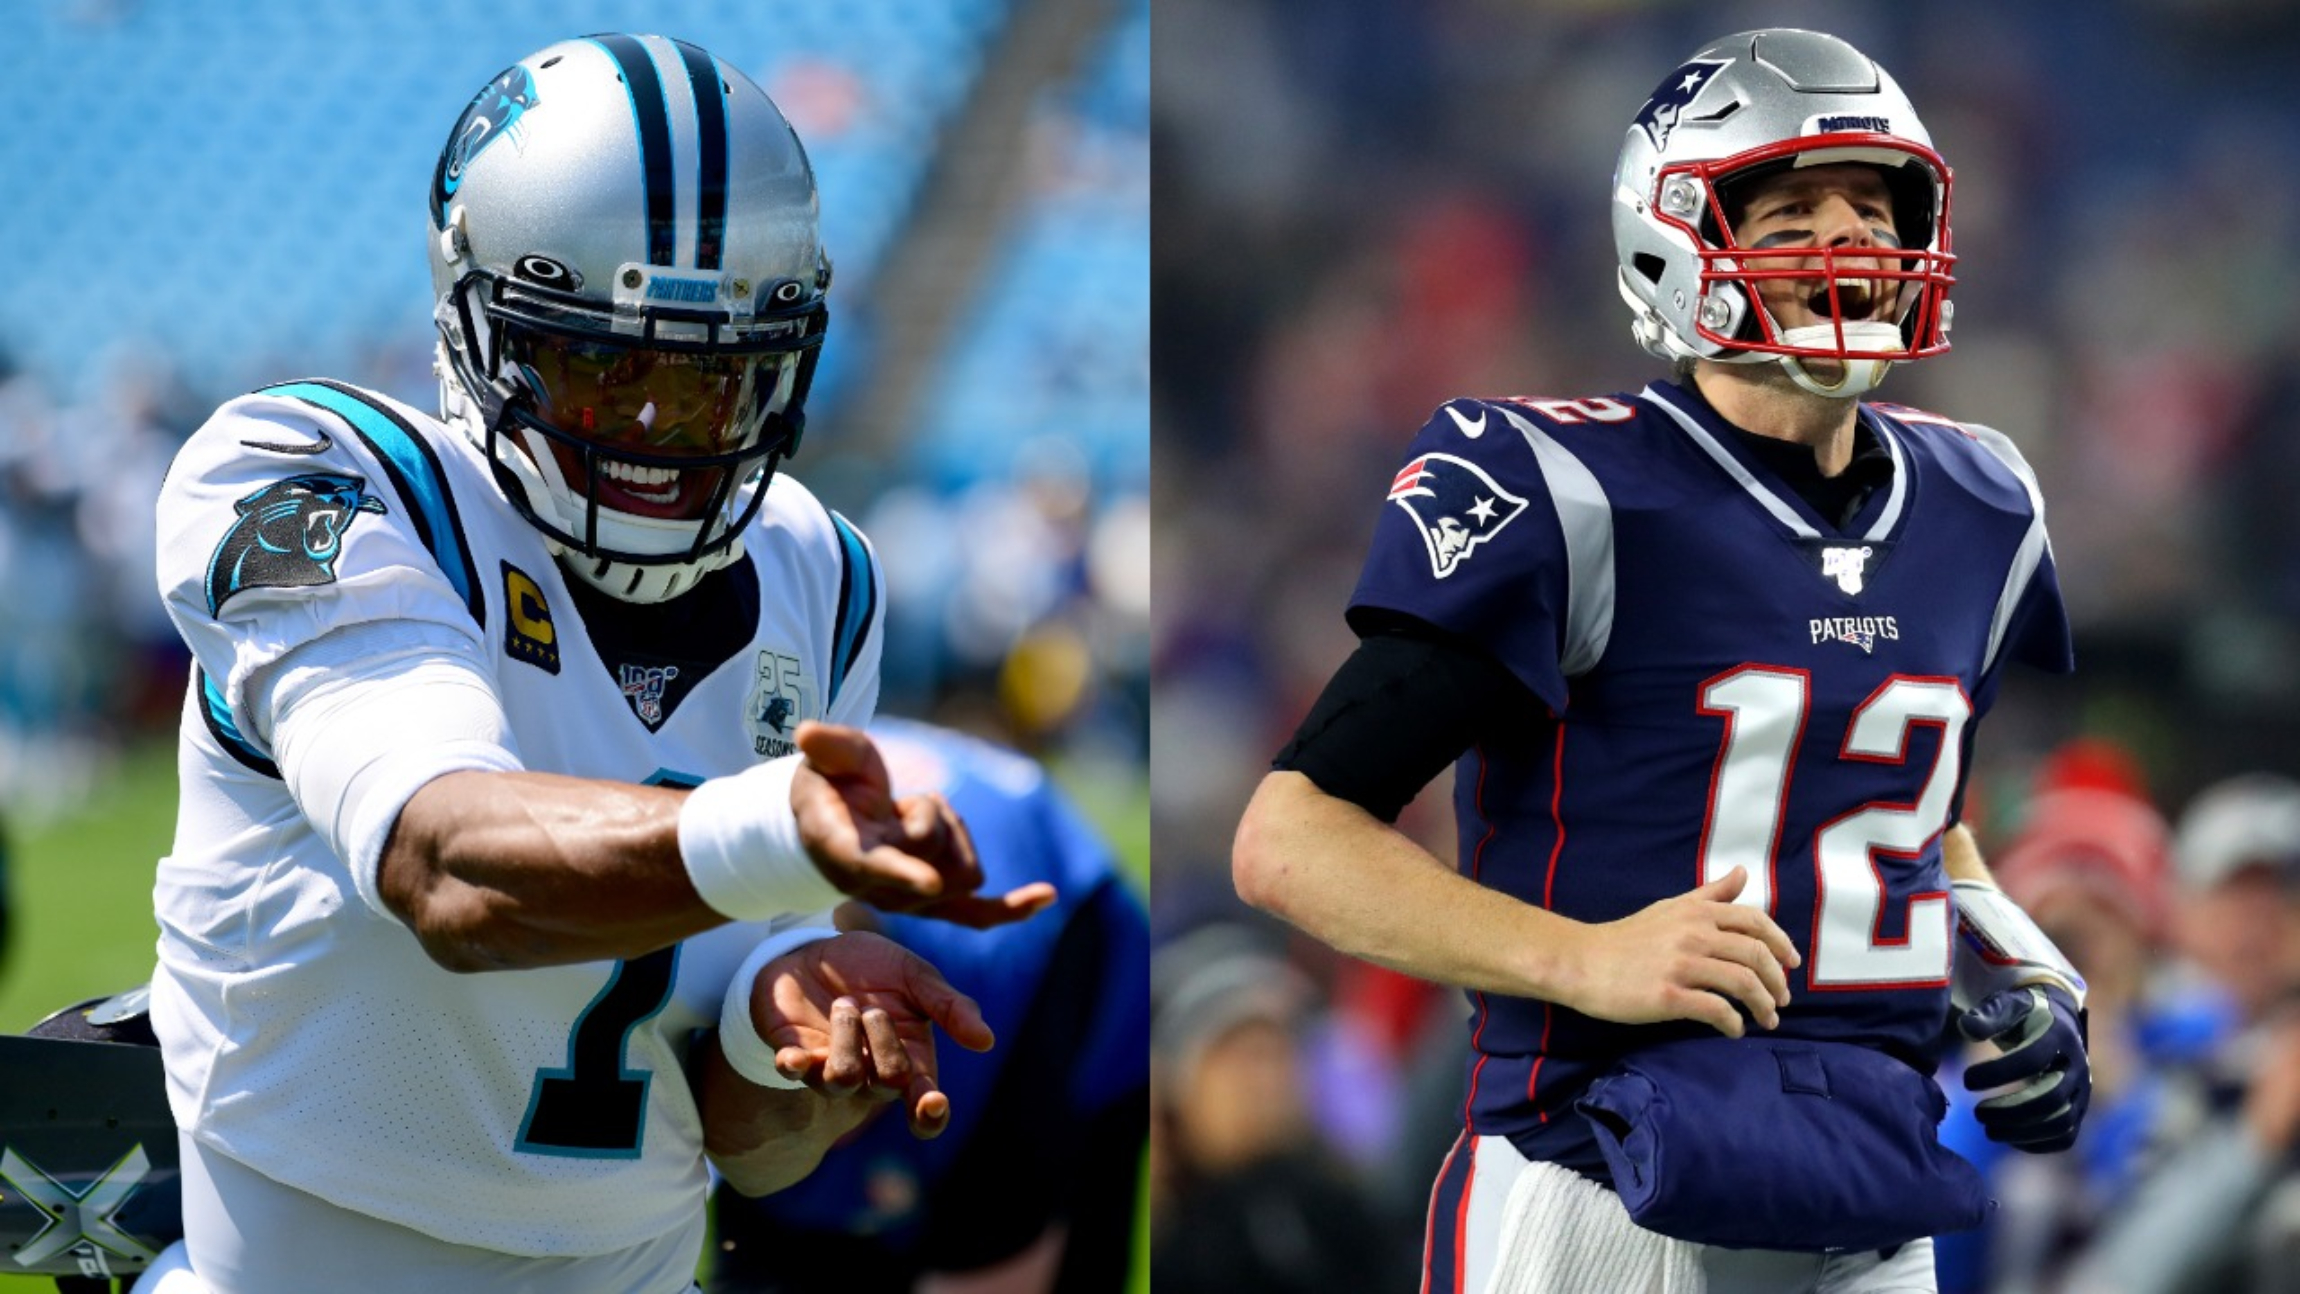 Cam Newton is now the Patriots' next great quarterback, as he is filling the shoes of Tom Brady. So, how do their net worths compare?